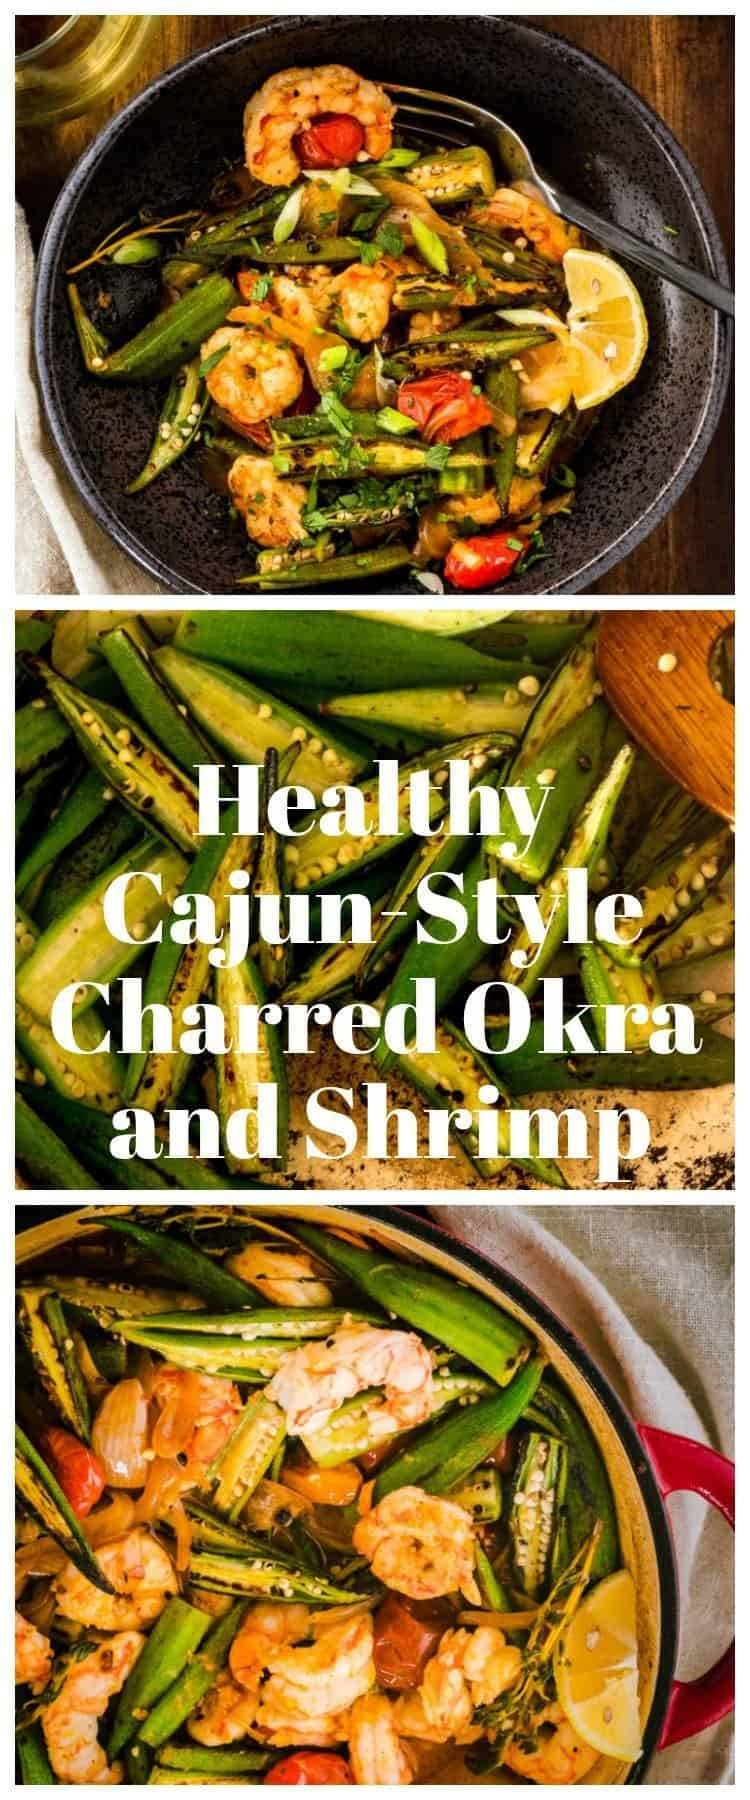 Healthy Cajun-Style Charred Okra and Shrimp Pin - The flavors of gumbo - thyme, paprika, cayenne, garlic - without the fat-laden roux. Ready in under half an hour, this one-pot dish is likely to become a new family favorite! #charredokra #healthygumbo #cajunspicemix #okraandshrimp